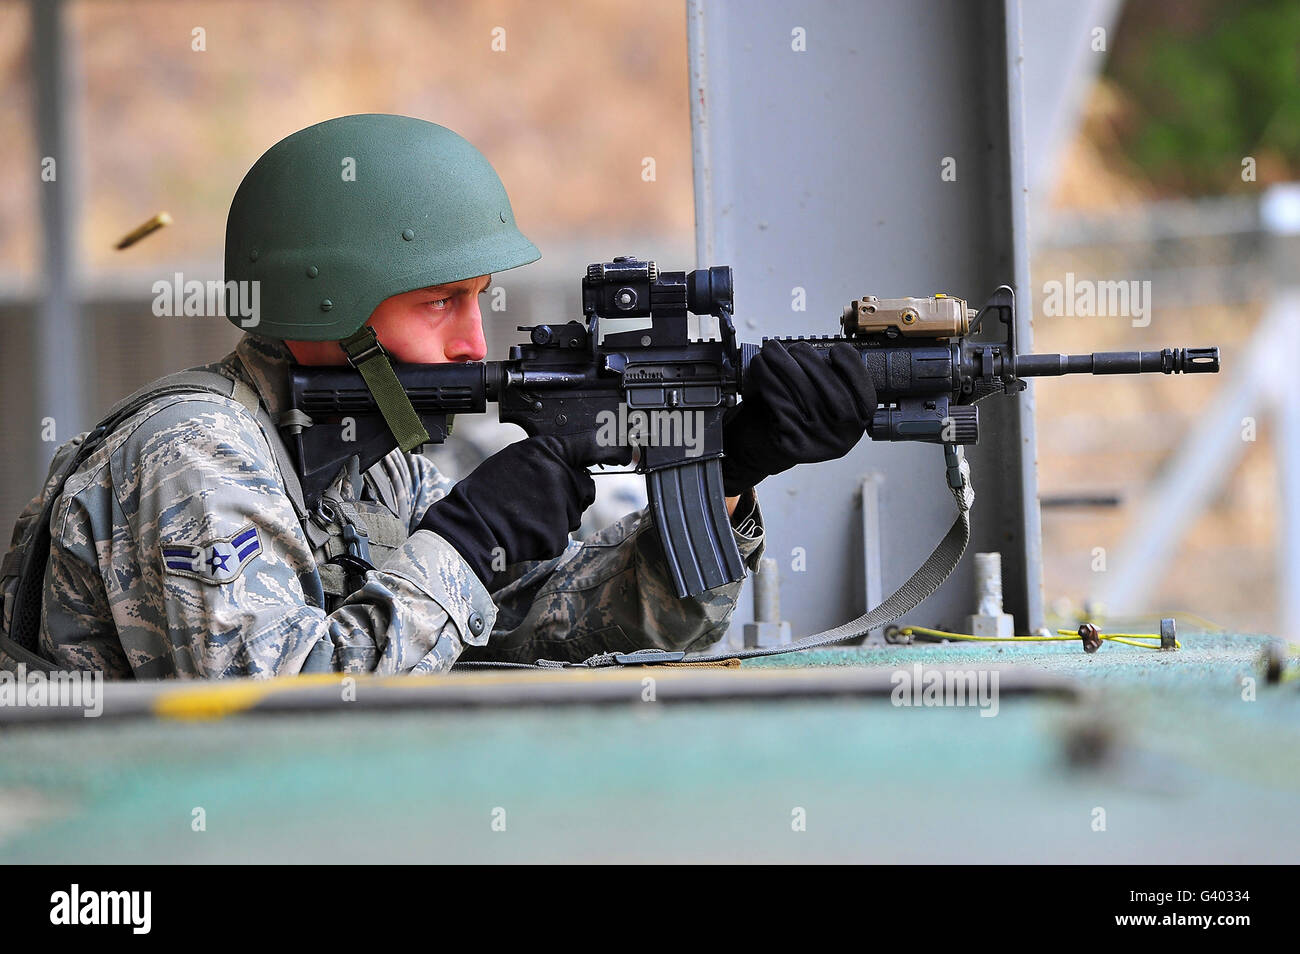 Airman zeroes in his weapon before a shooting exercise. Stock Photo